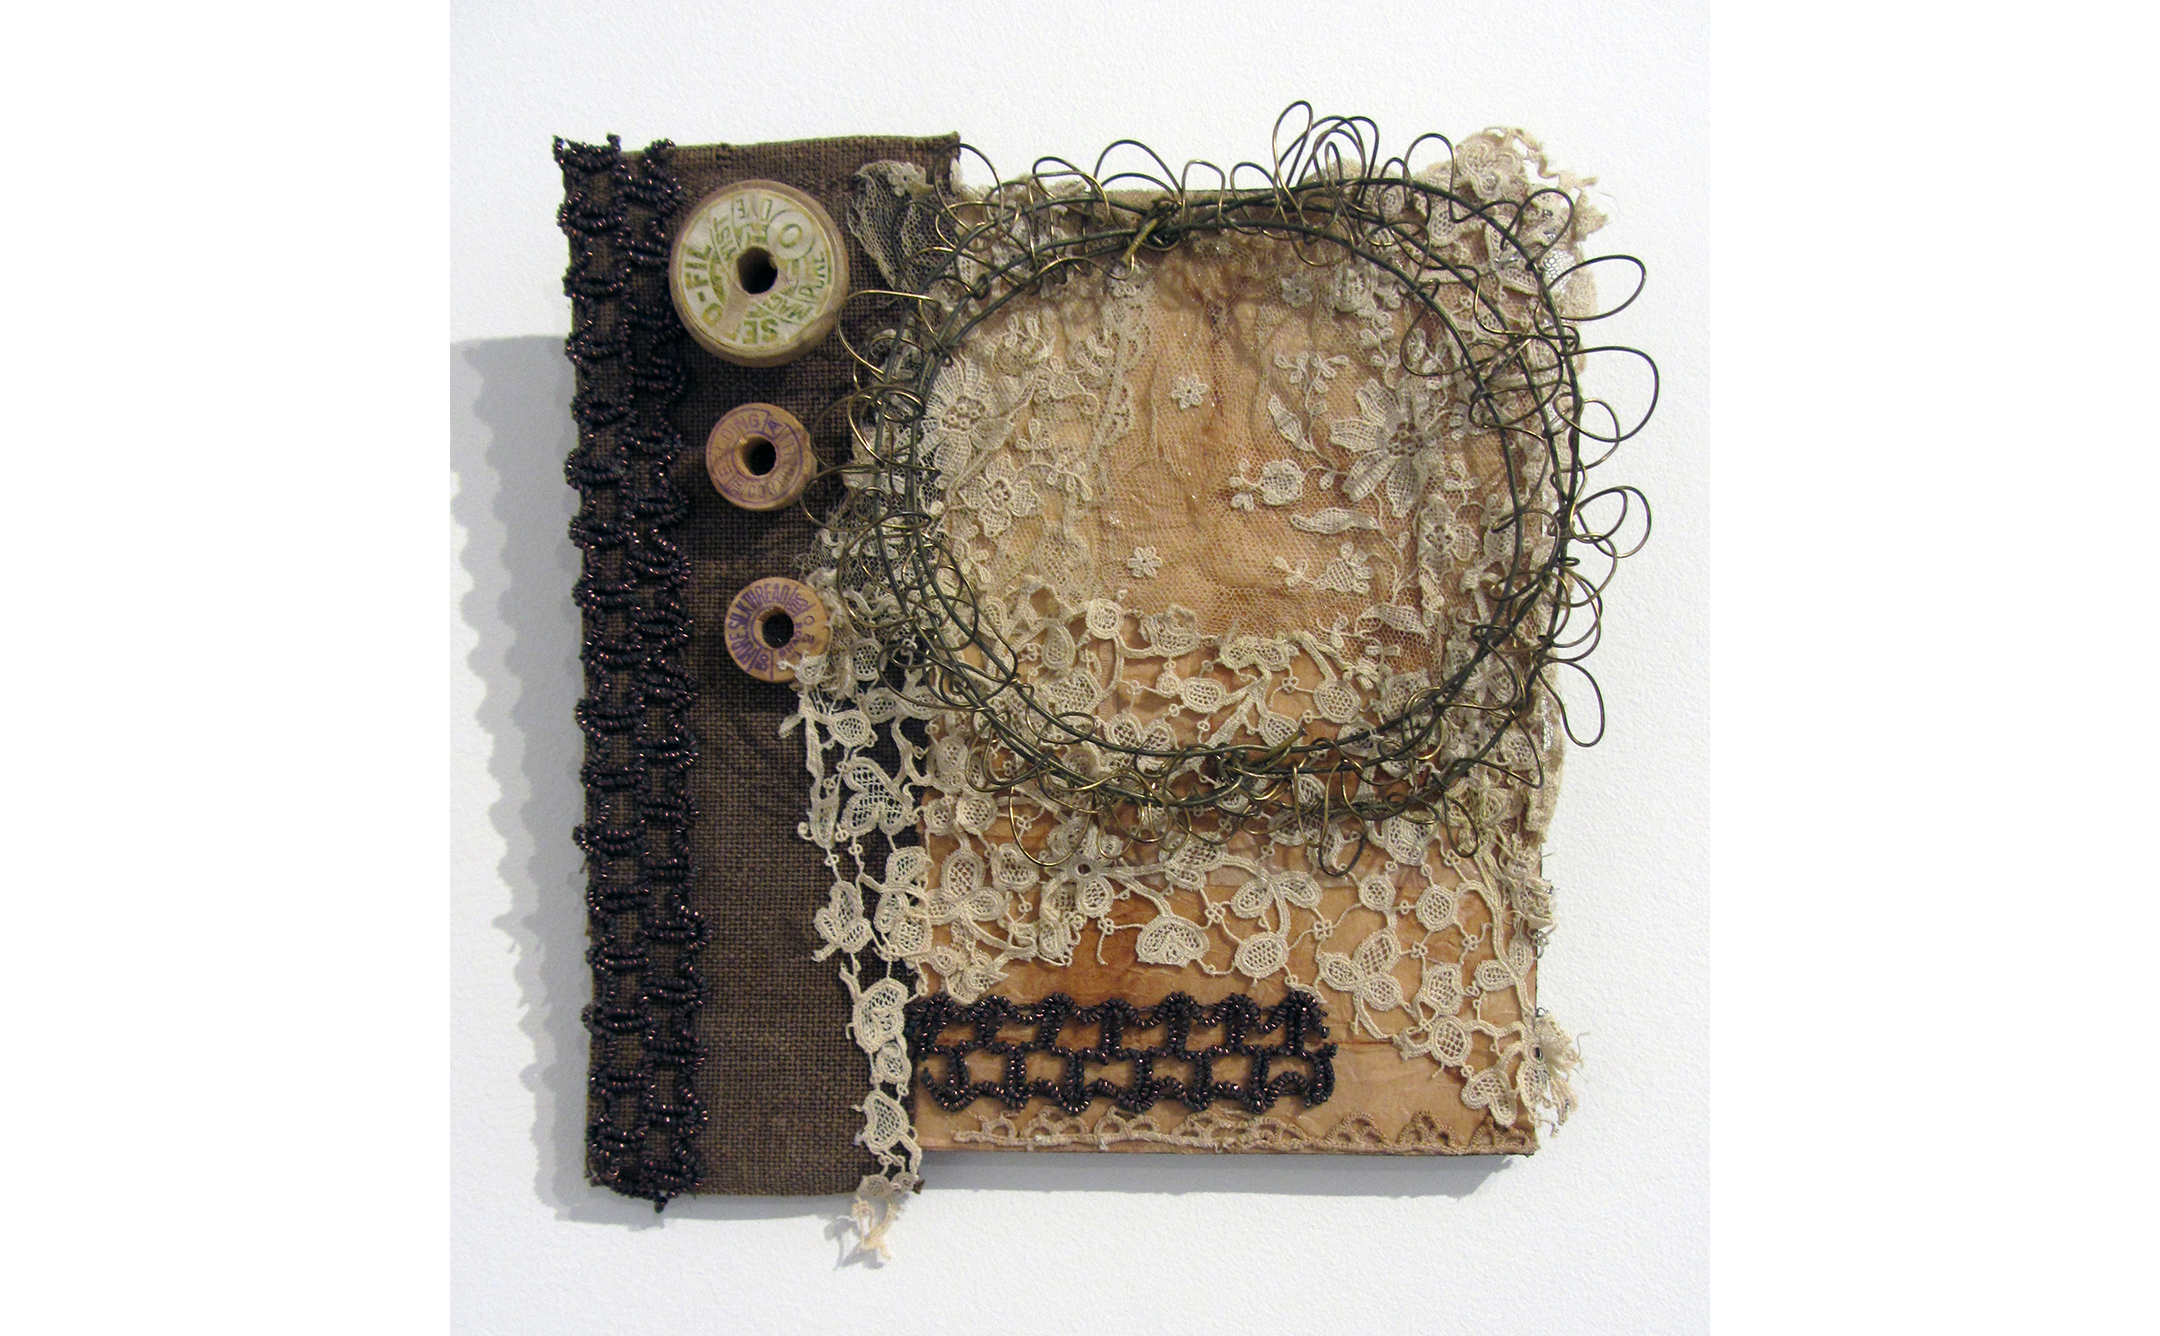 Liz Curtin, A Few Small Repairs III Tattered and Torn, 2017, Mixed Media, 10 x 10 inches, $475.JPG